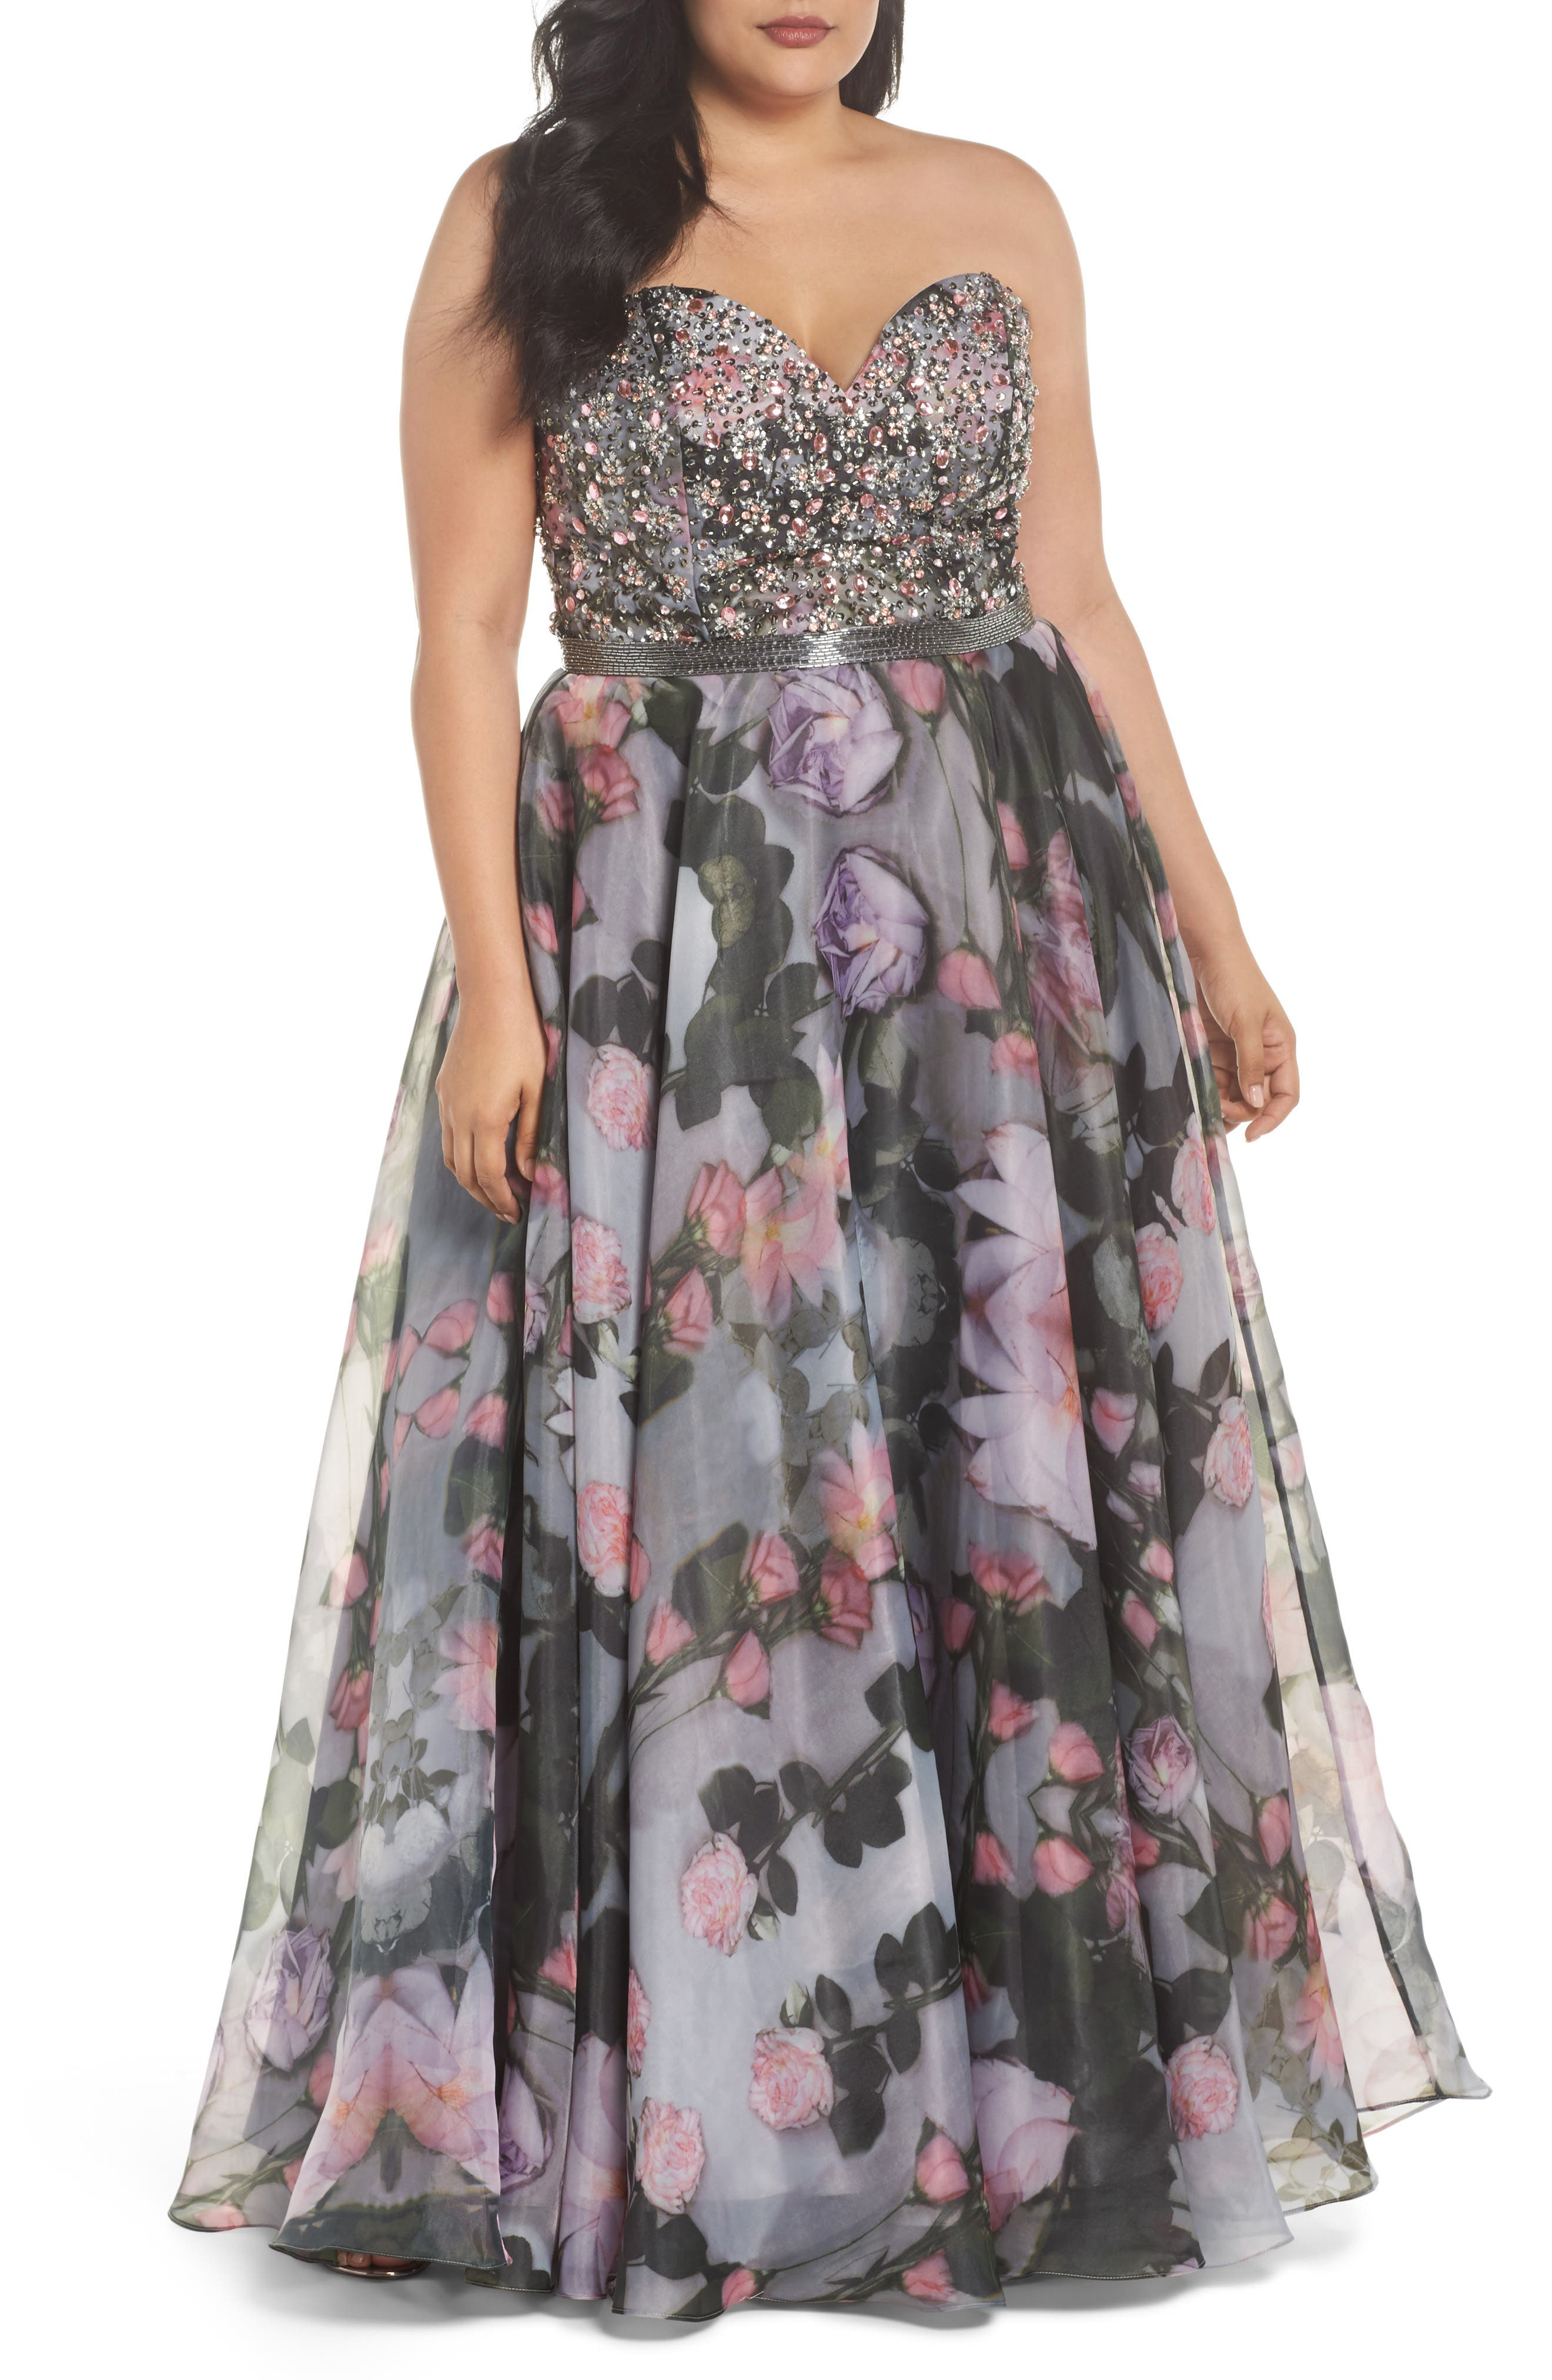 Alternate Image 1 Selected - Mac Duggal Embellished Flora Strapless Sweetheart Gown (Plus Size)